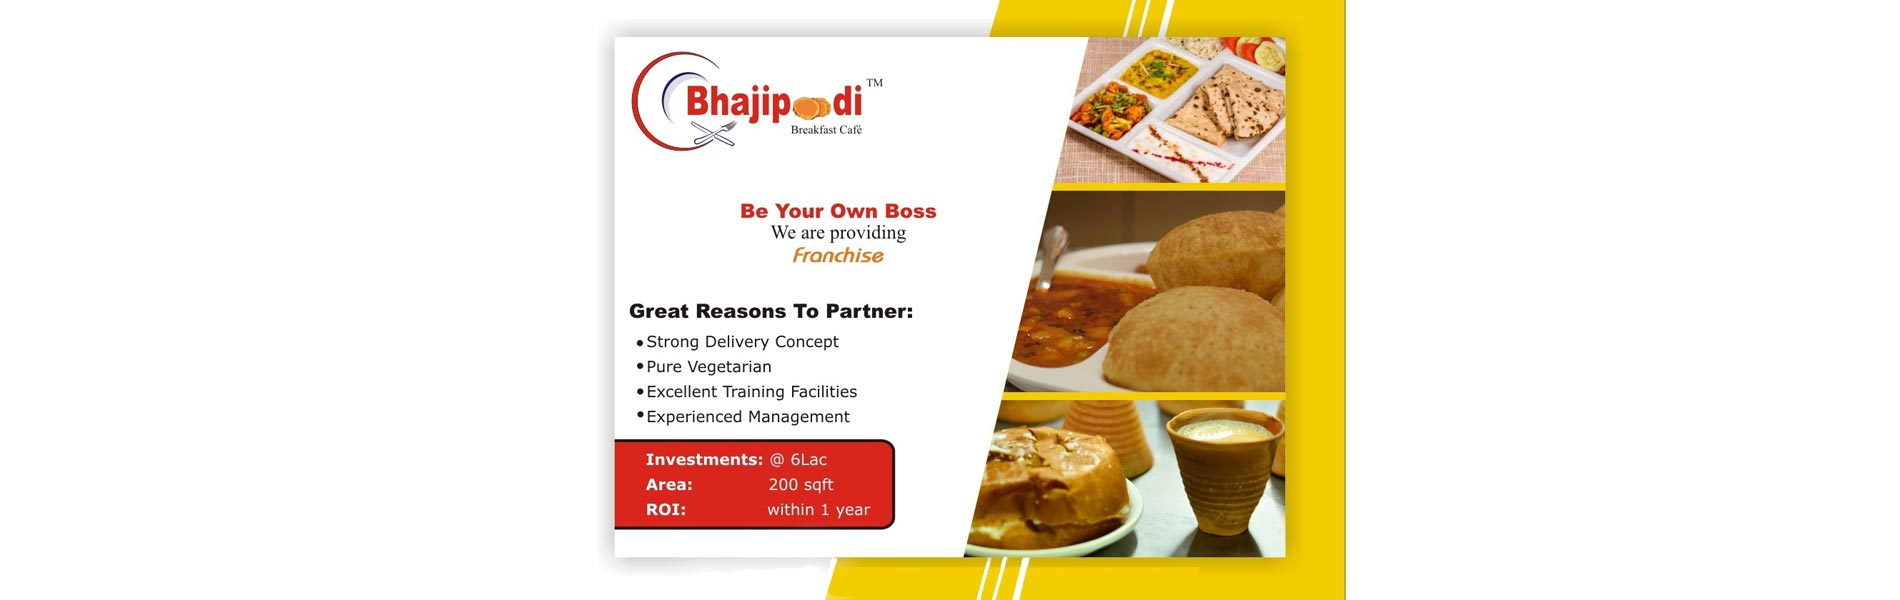 BHAJIPOODI – The Breakfast cafe